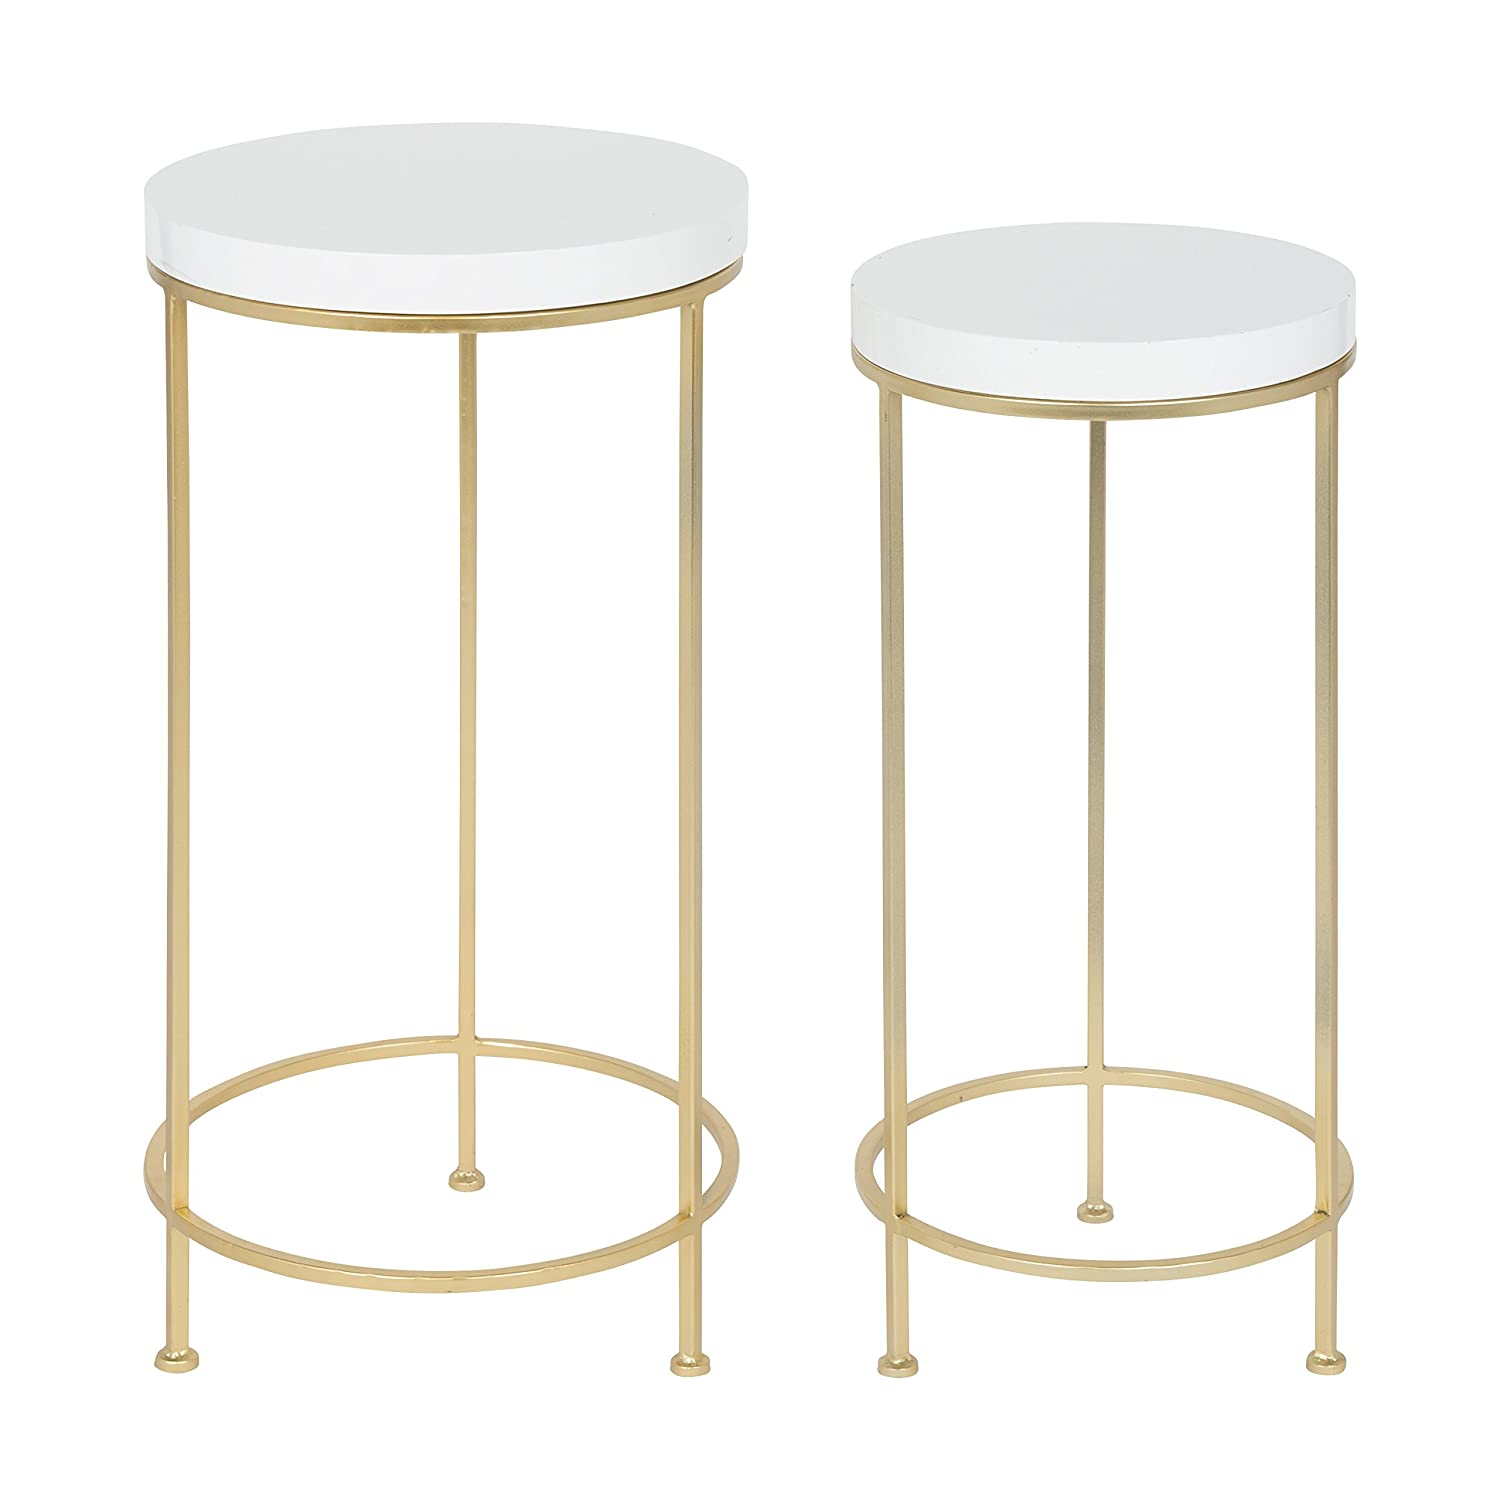 Kate and Laurel 212018 Espada Nesting Tables, Gold Uniek